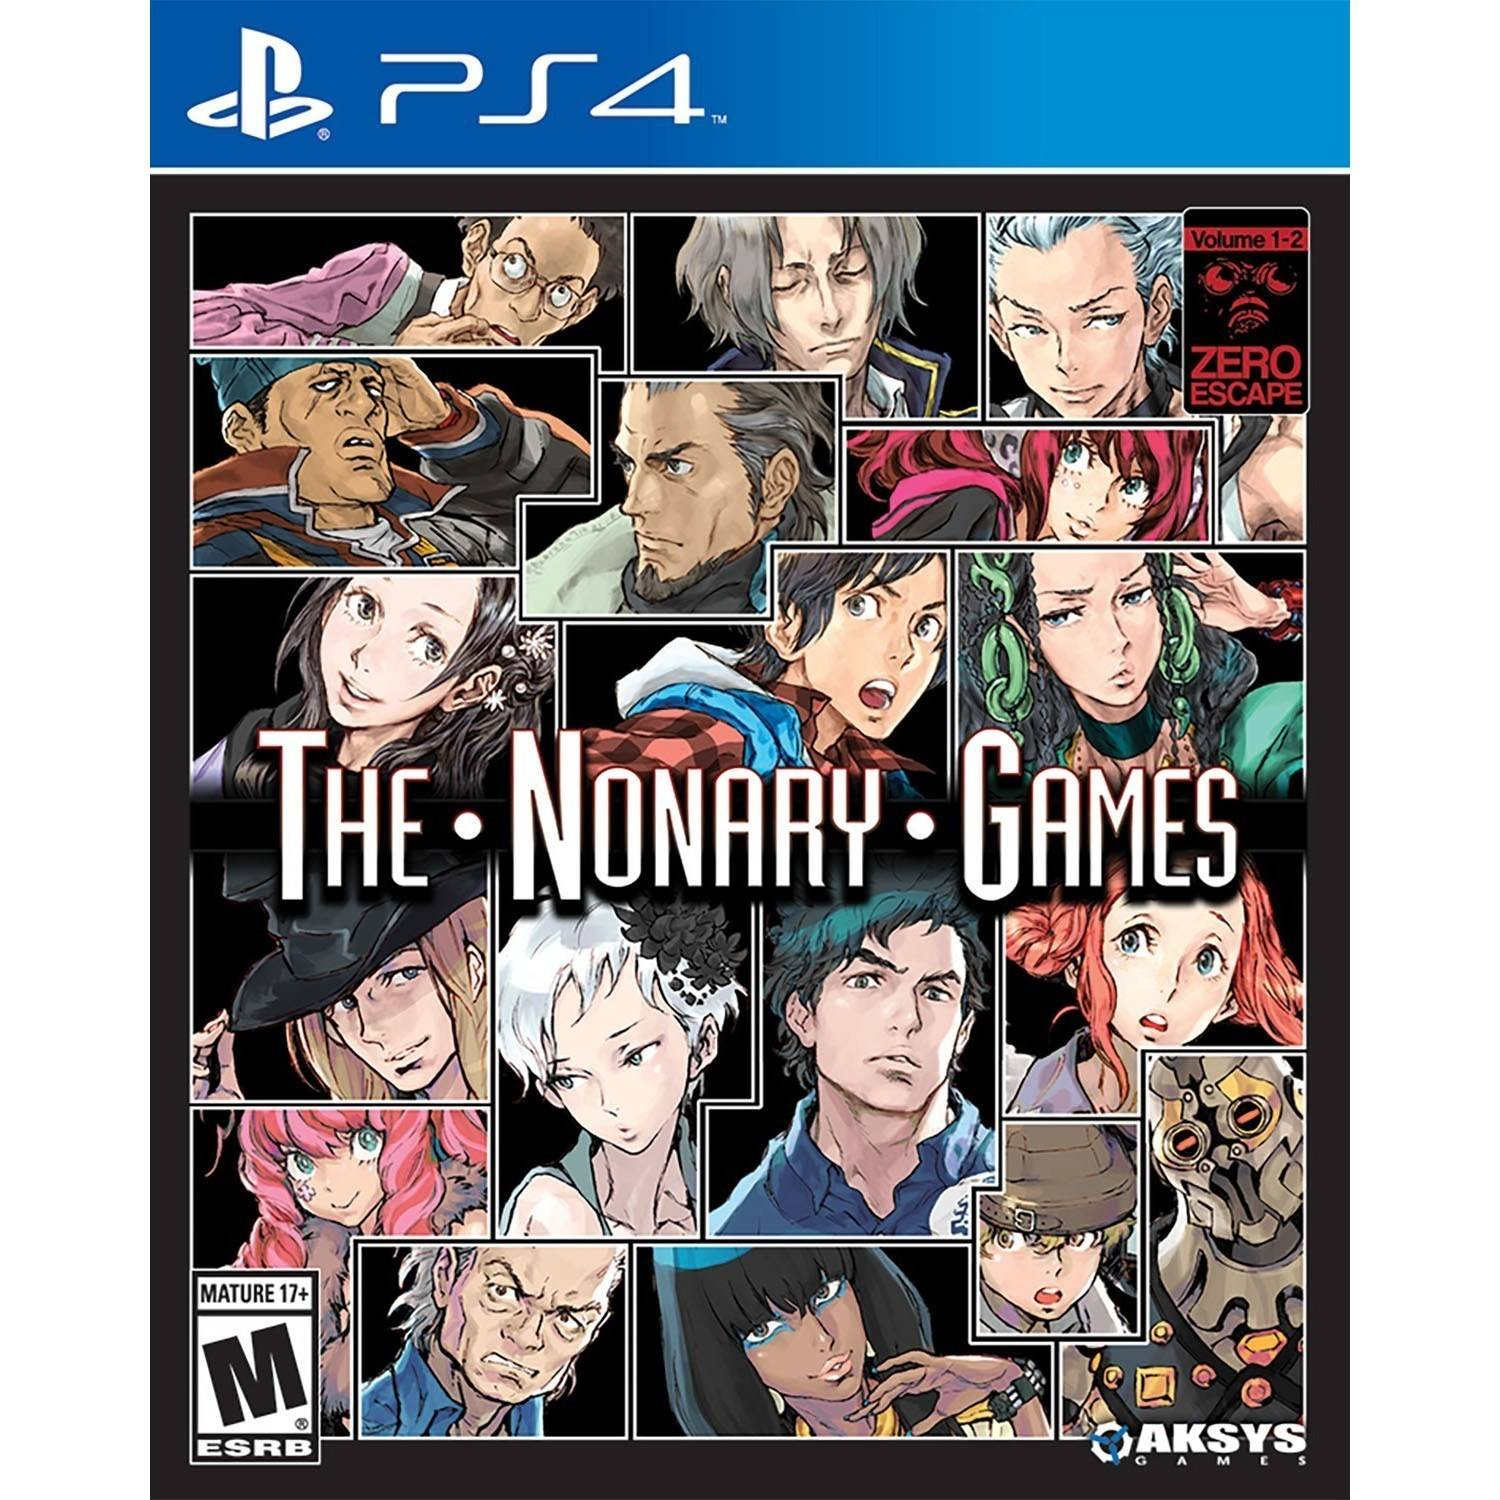 Zero Escape: The Nonary Games (PS4)